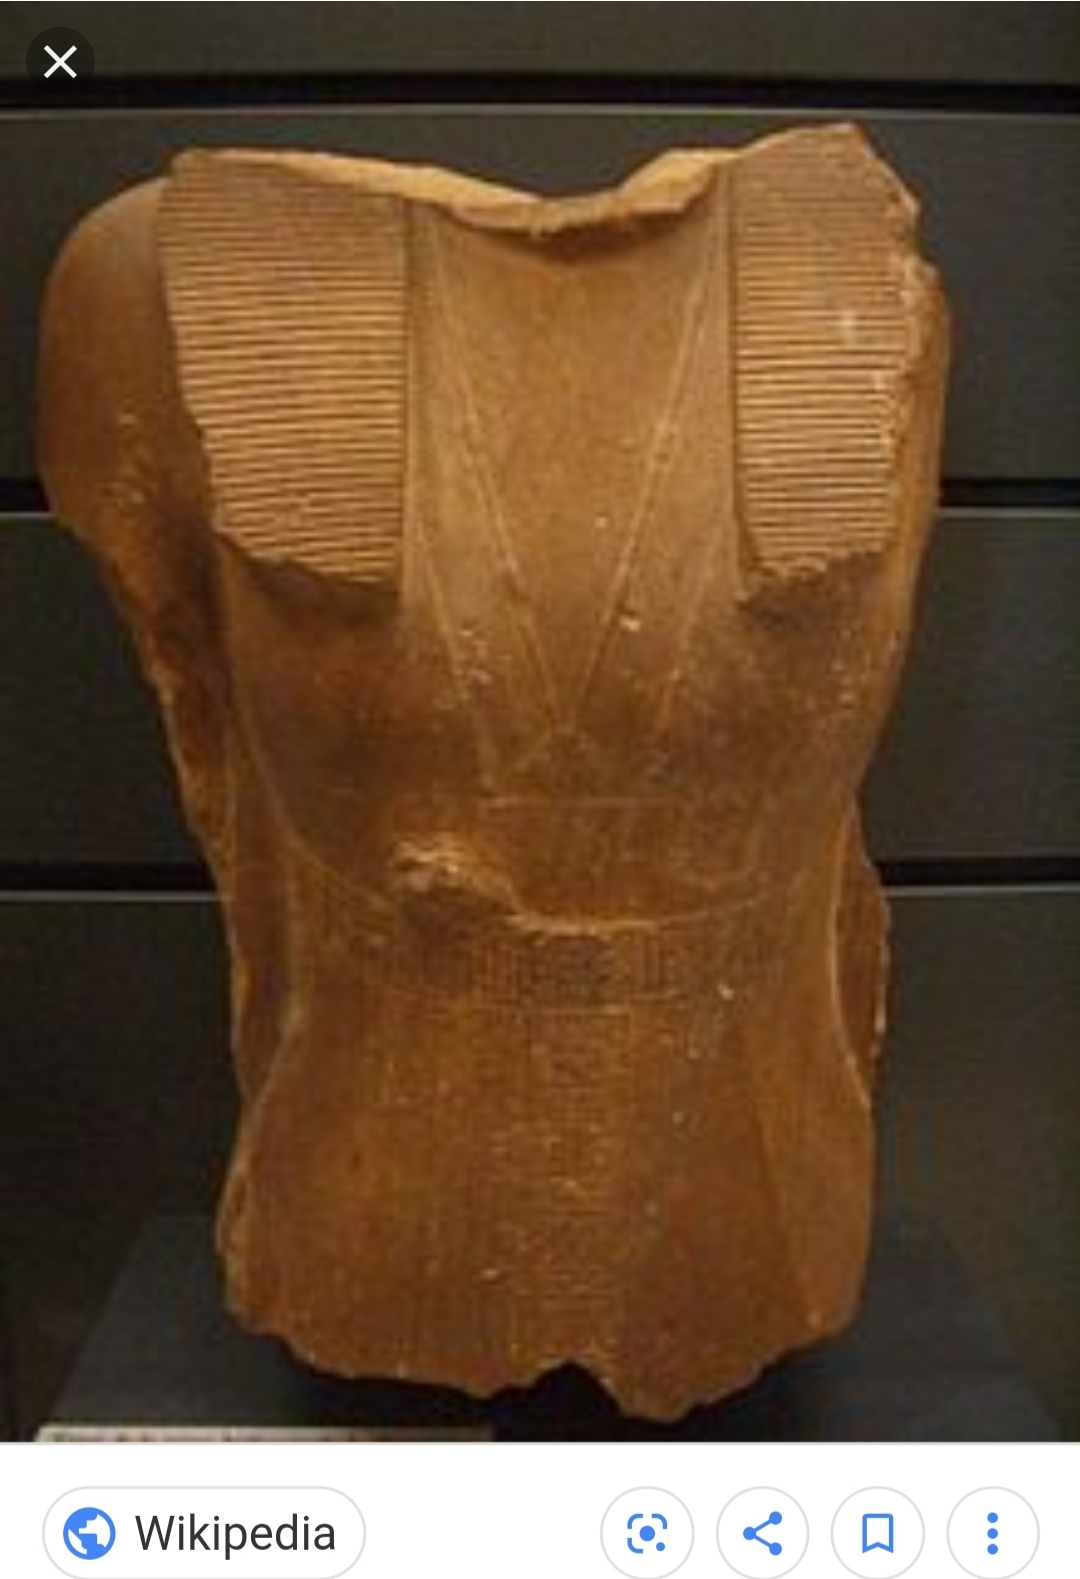 This piece of a statue is one of the few confirmed to depict Sobekneferu